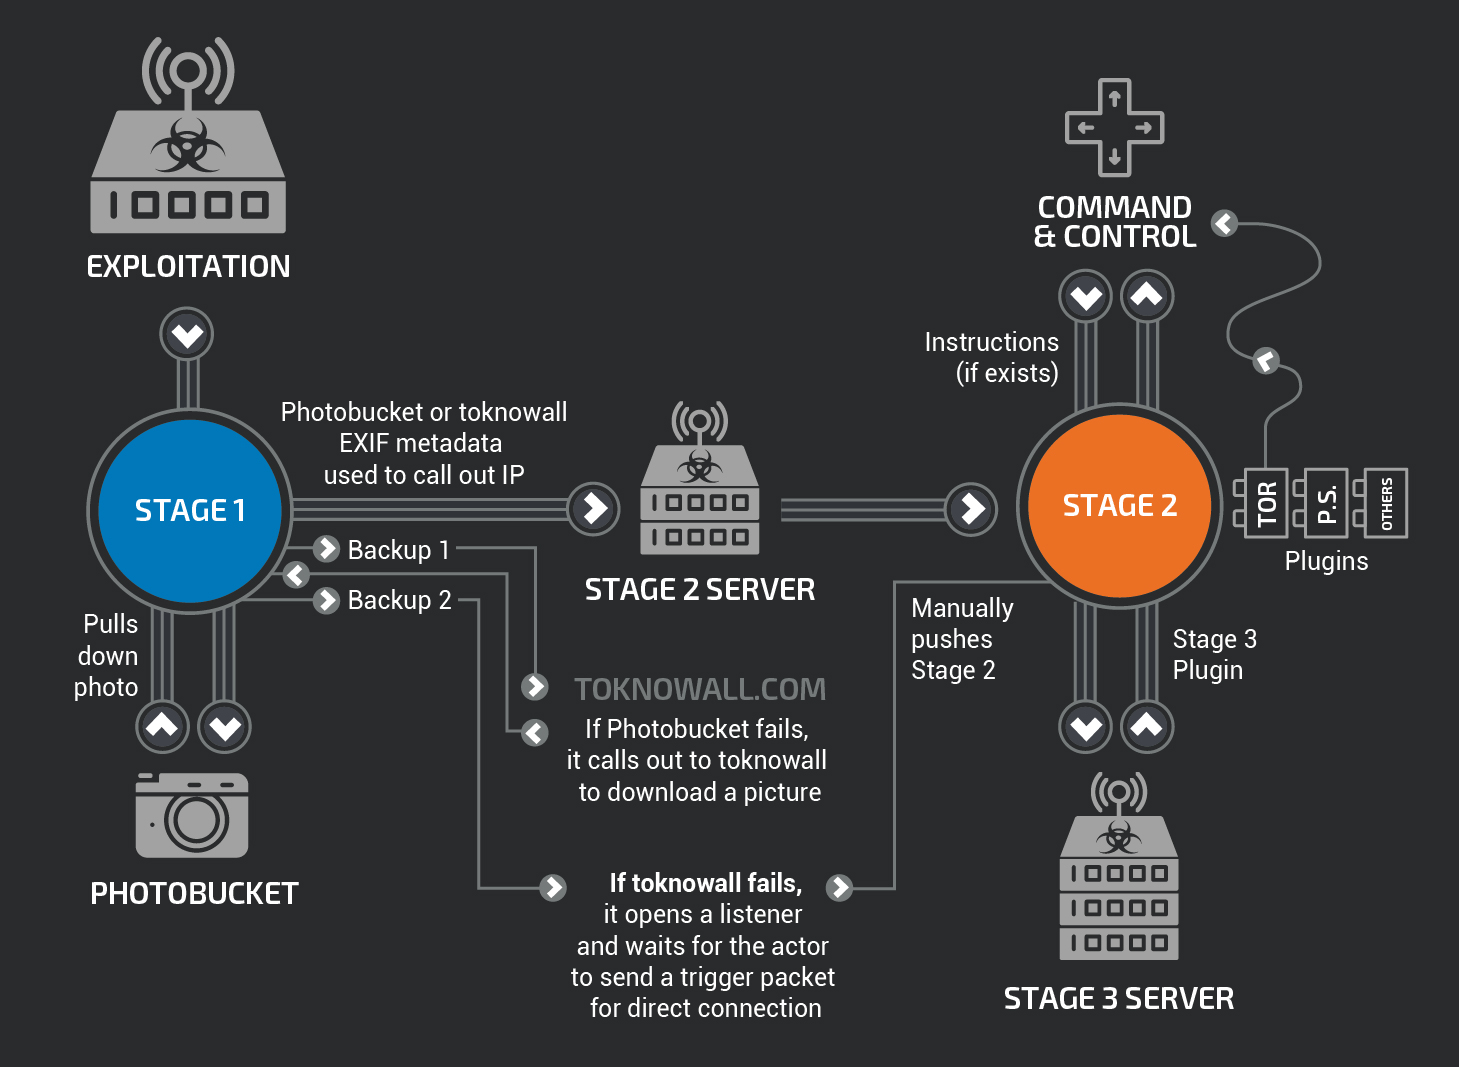 Talos Blog Cisco Intelligence Group Comprehensive Threat Loads Can Simply Be Connected Between Phases Phase Connection And A Communications Module That Allows Stage 2 To Communicate Over Tor We Assess With High Confidence Several Other Plugin Modules Exist